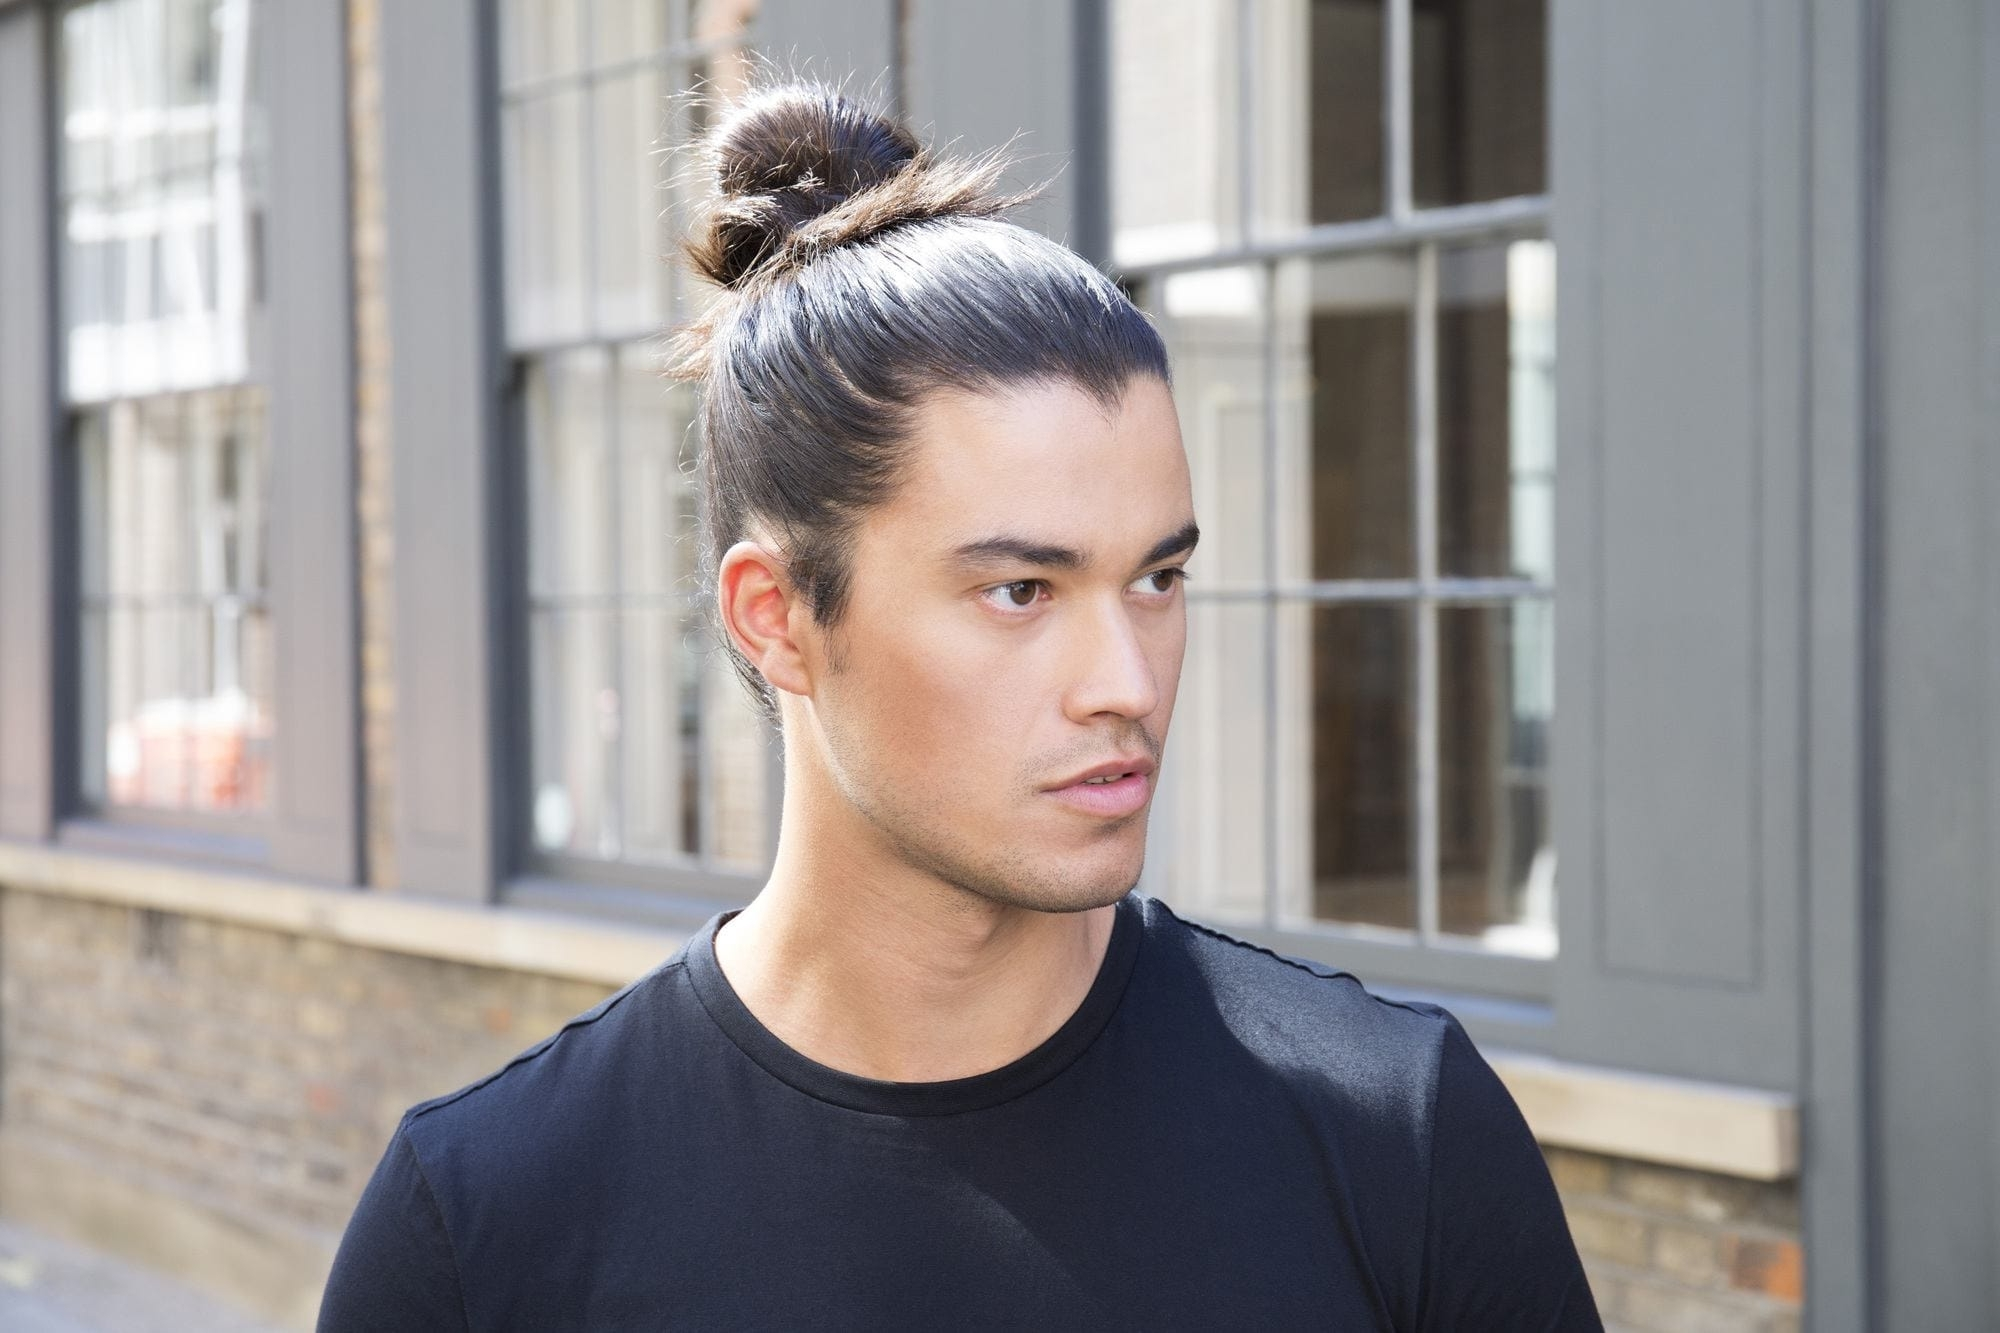 2018 Casual Bun With Highlights Within How To Tie A Man Bun: Step By Step Tutorials And Video (View 2 of 15)